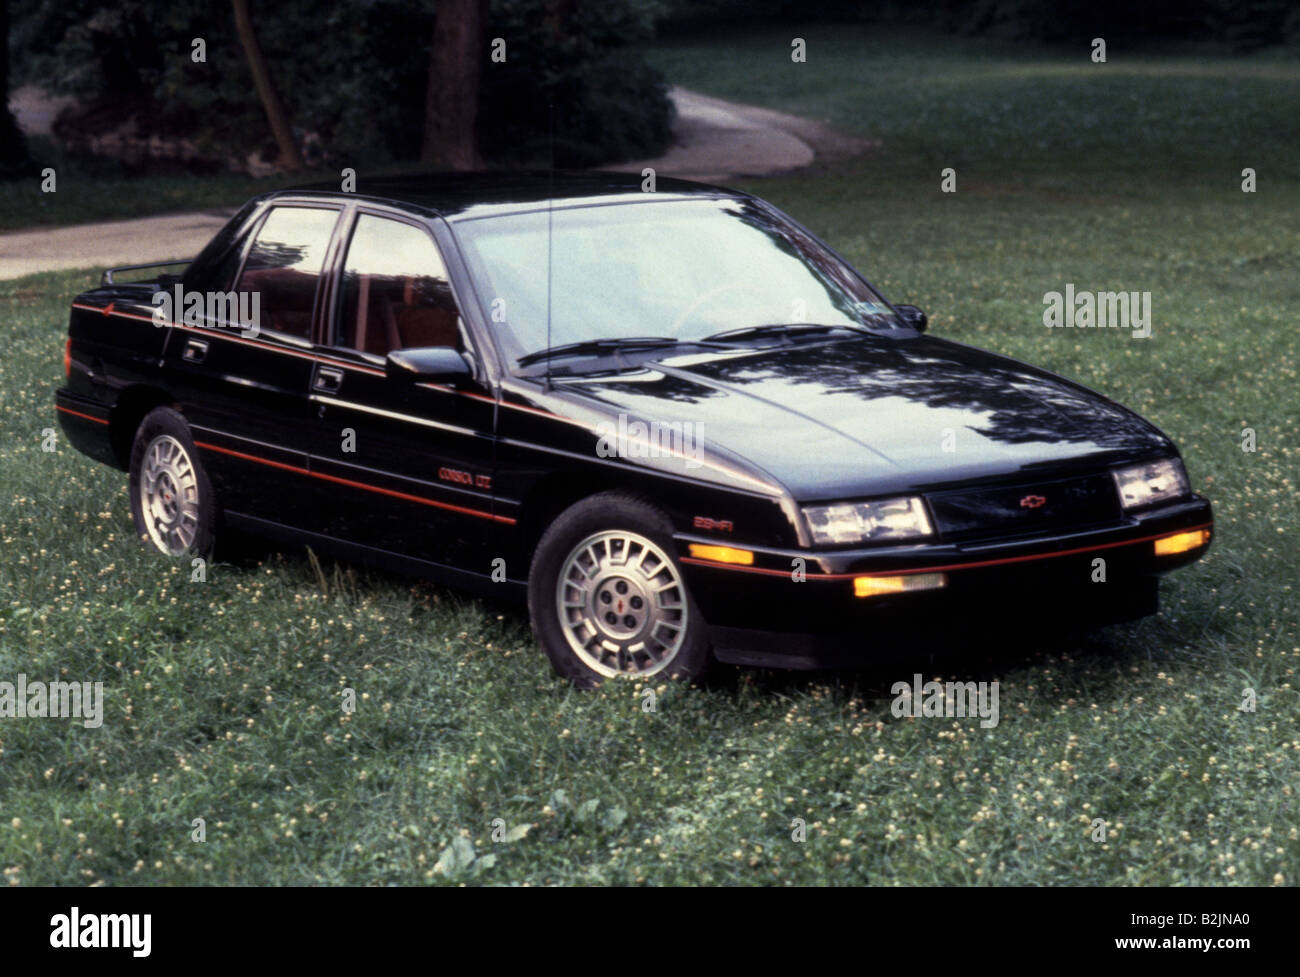 All Chevy chevy corsica : Chevrolet Corsica LTZ Chevy Automobile Car General Motors GM ...